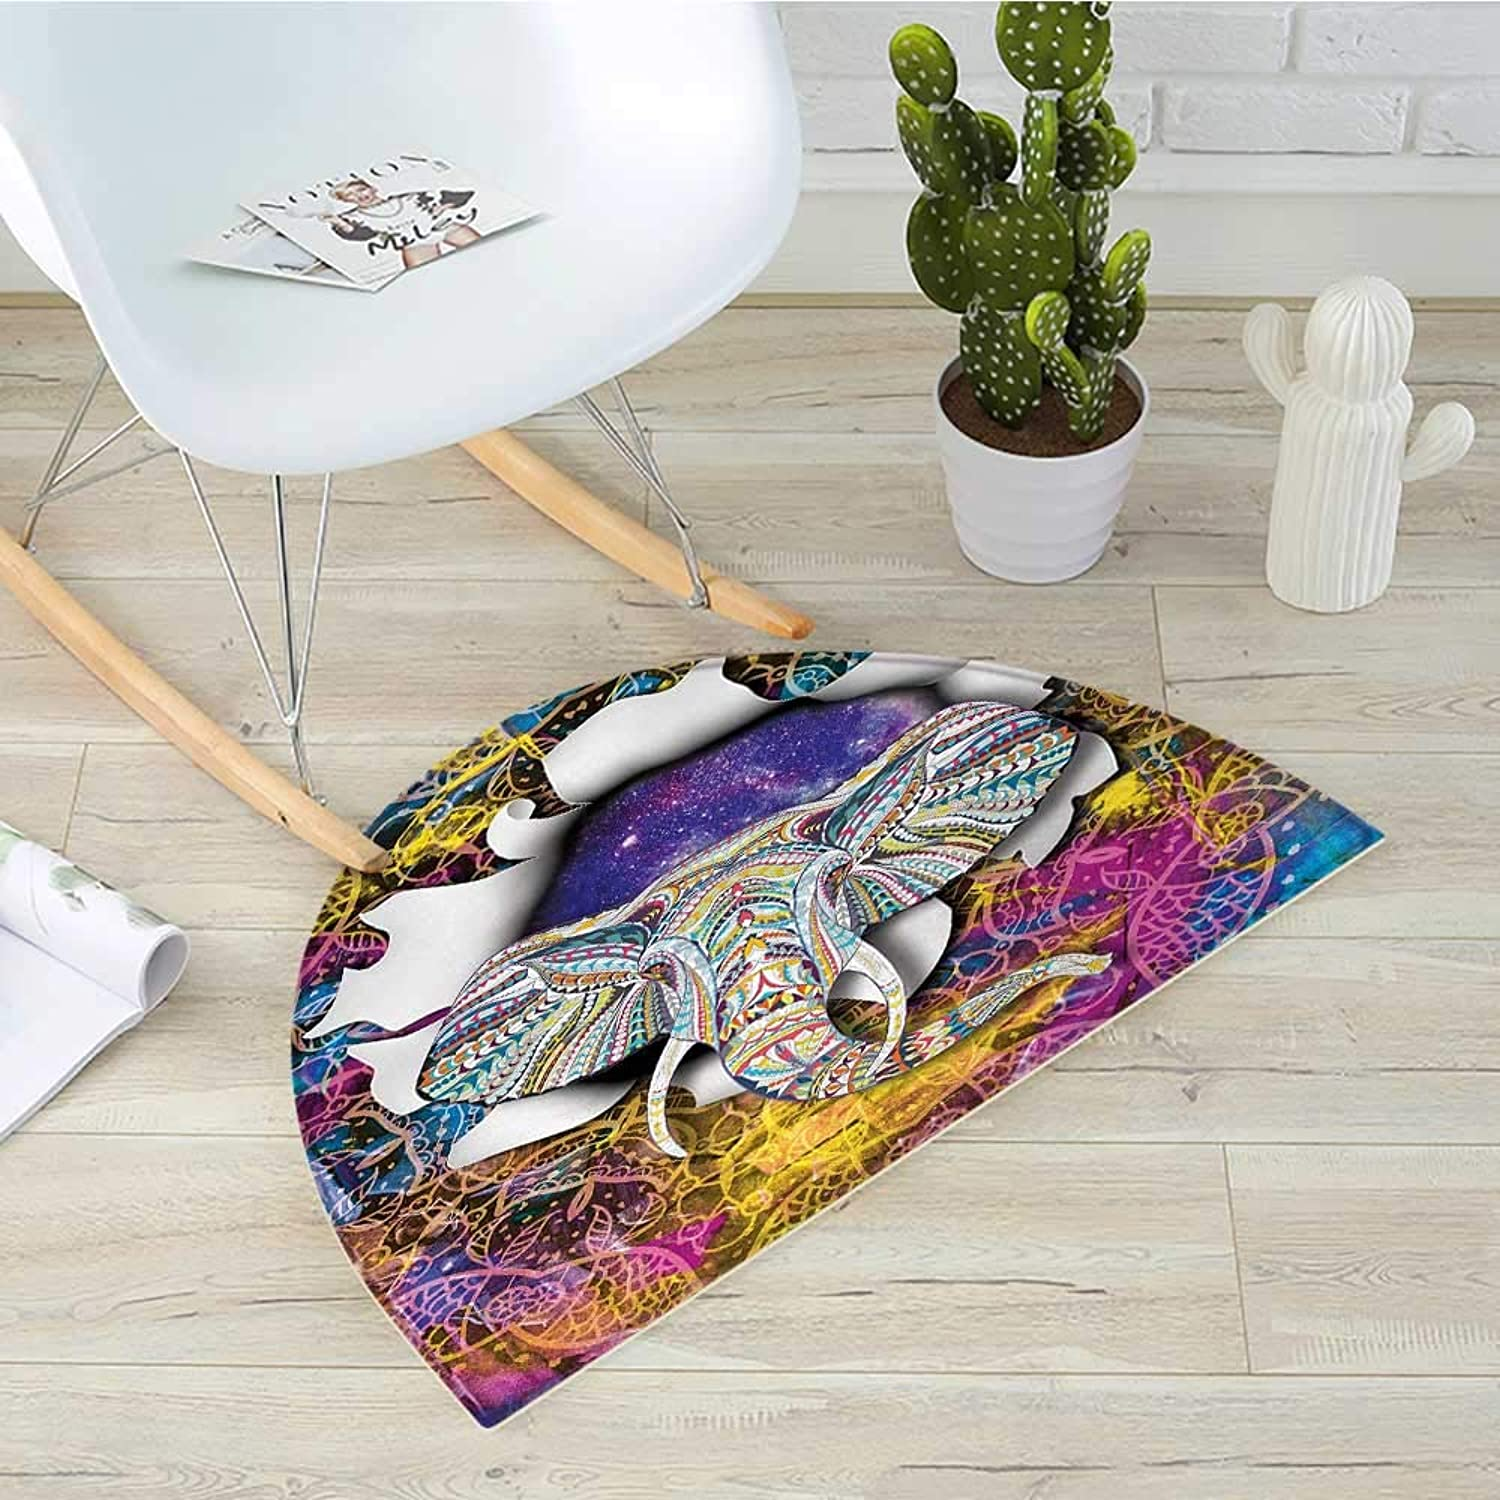 Animal Semicircular CushionElephant Figure Shows Up Inside Ethnic Fantasy Ornament Over Space Backdrop Kitsch Print Entry Door Mat H 39.3  xD 59  Multi